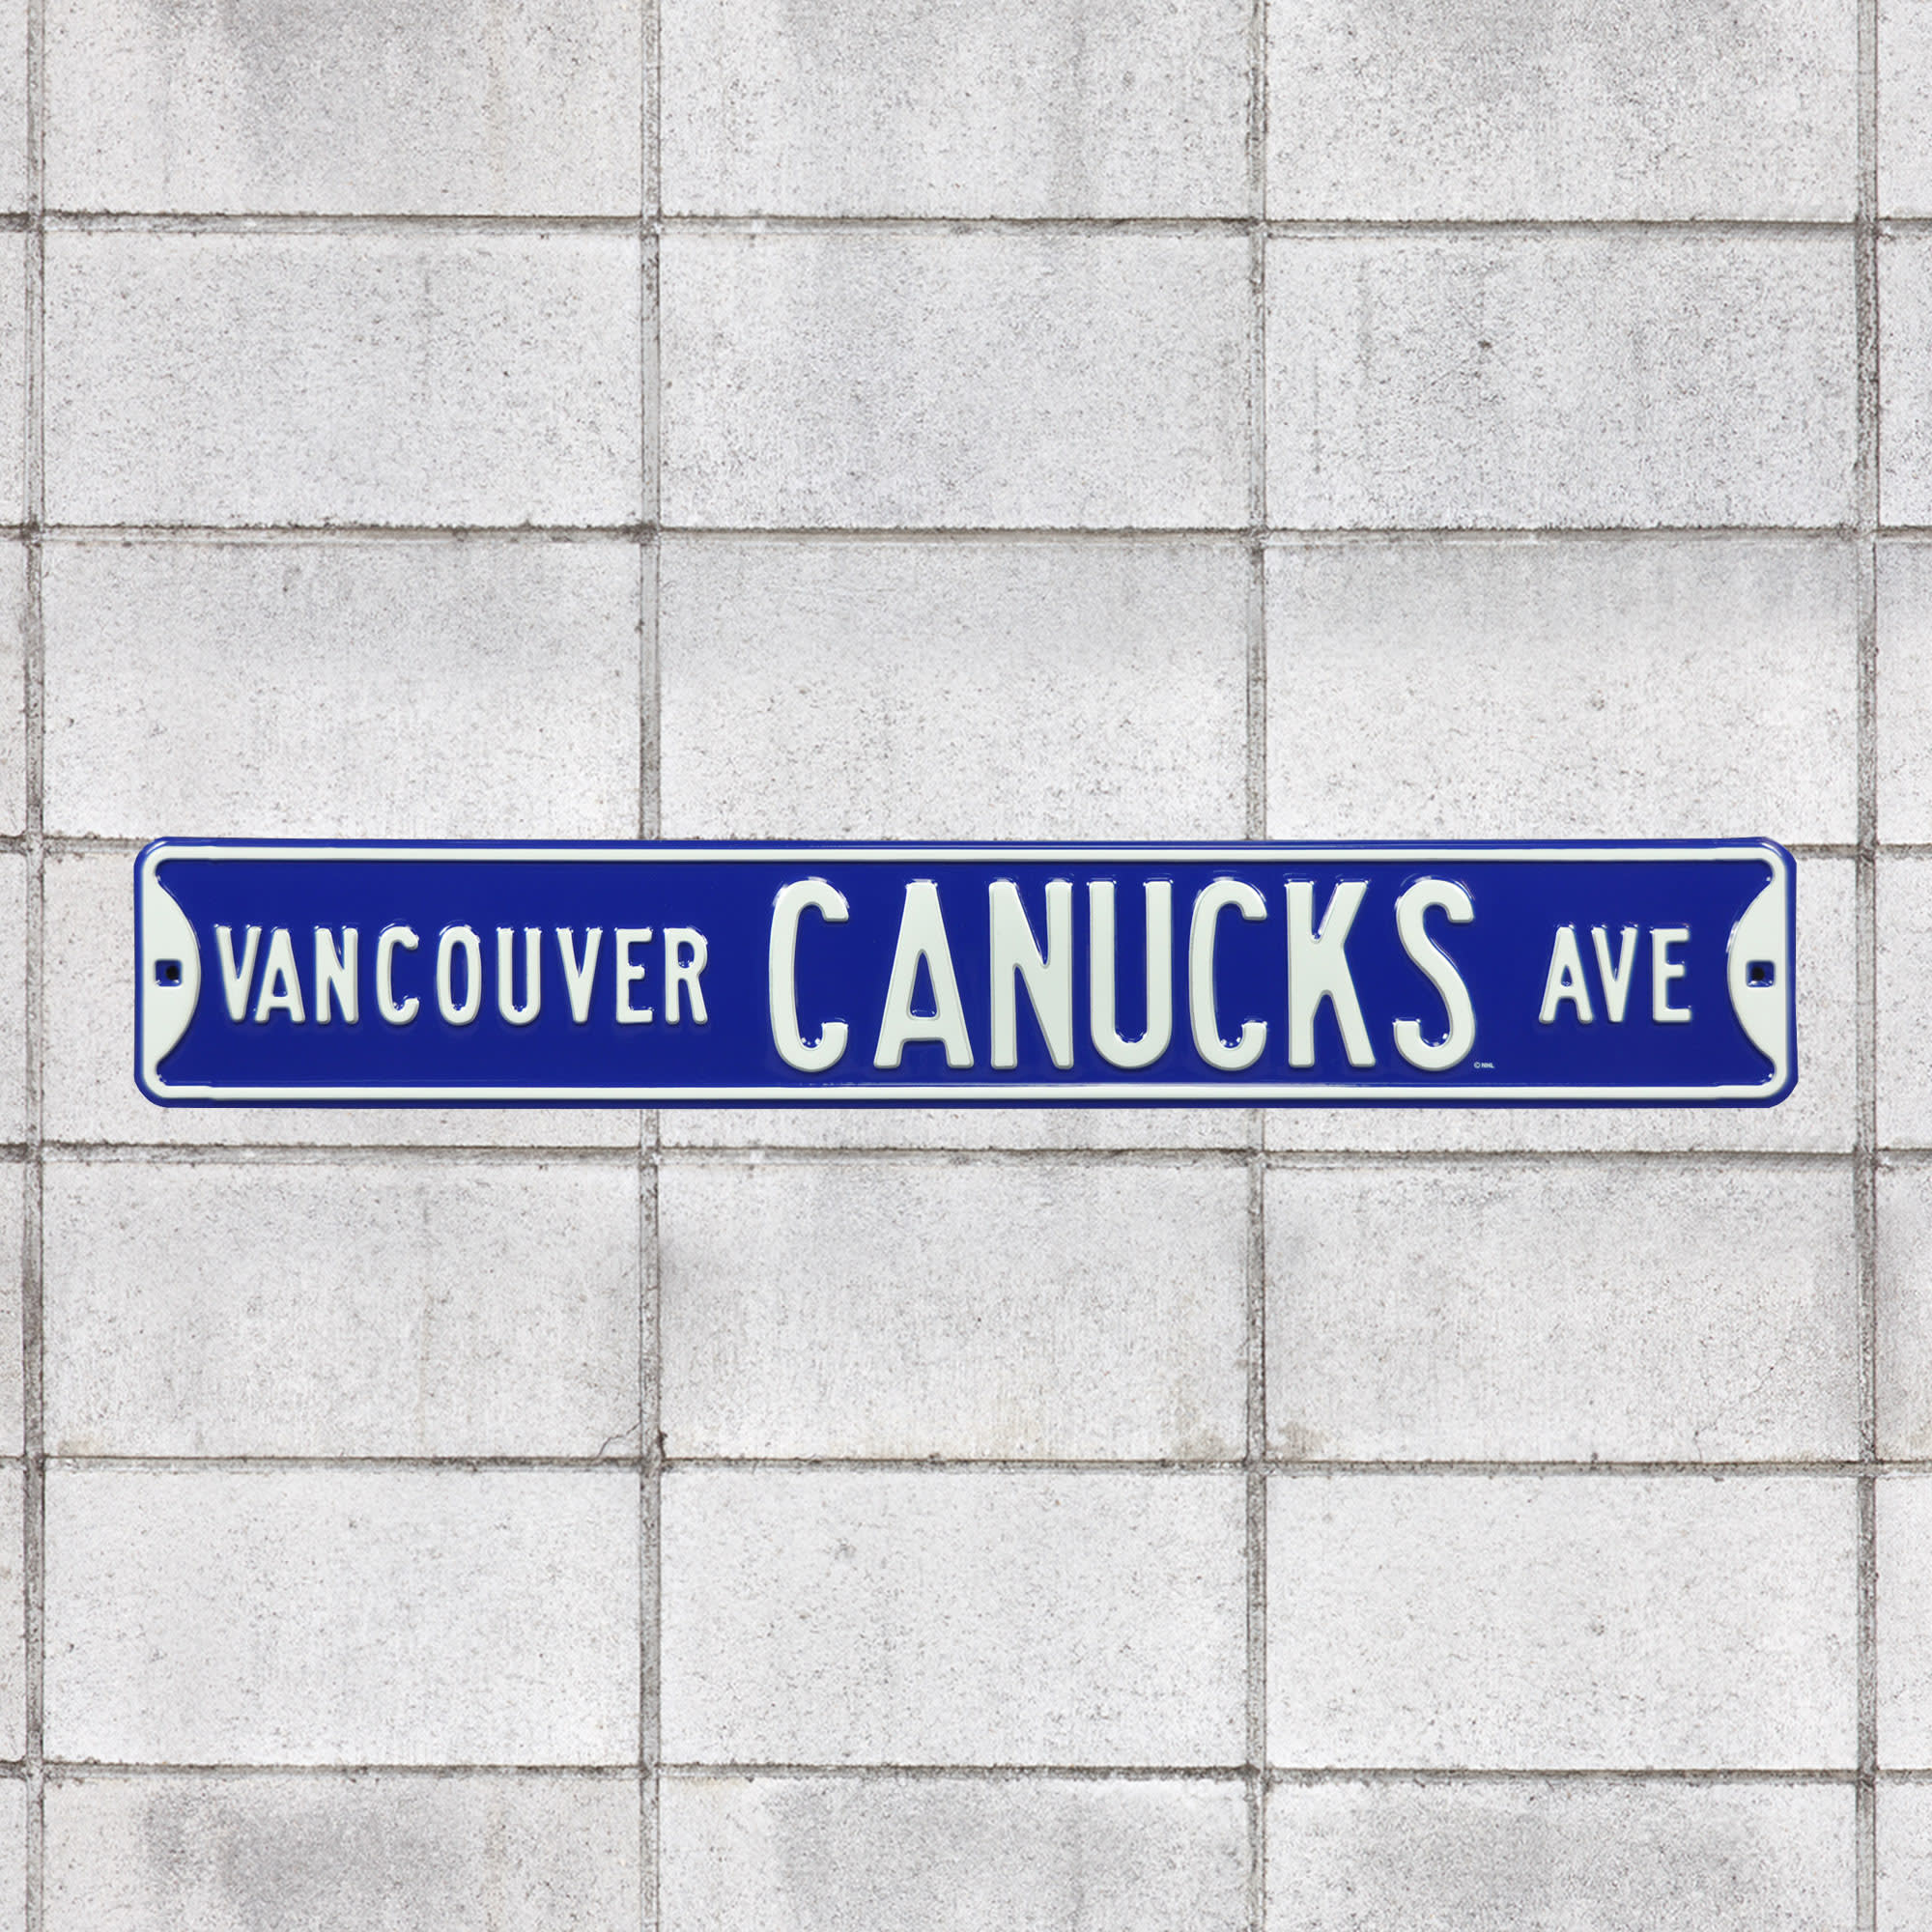 """Vancouver Canucks: Vancouver Canucks Avenue - Officially Licensed NHL Metal Street Sign 36.0""""W x 6.0""""H by Fathead 